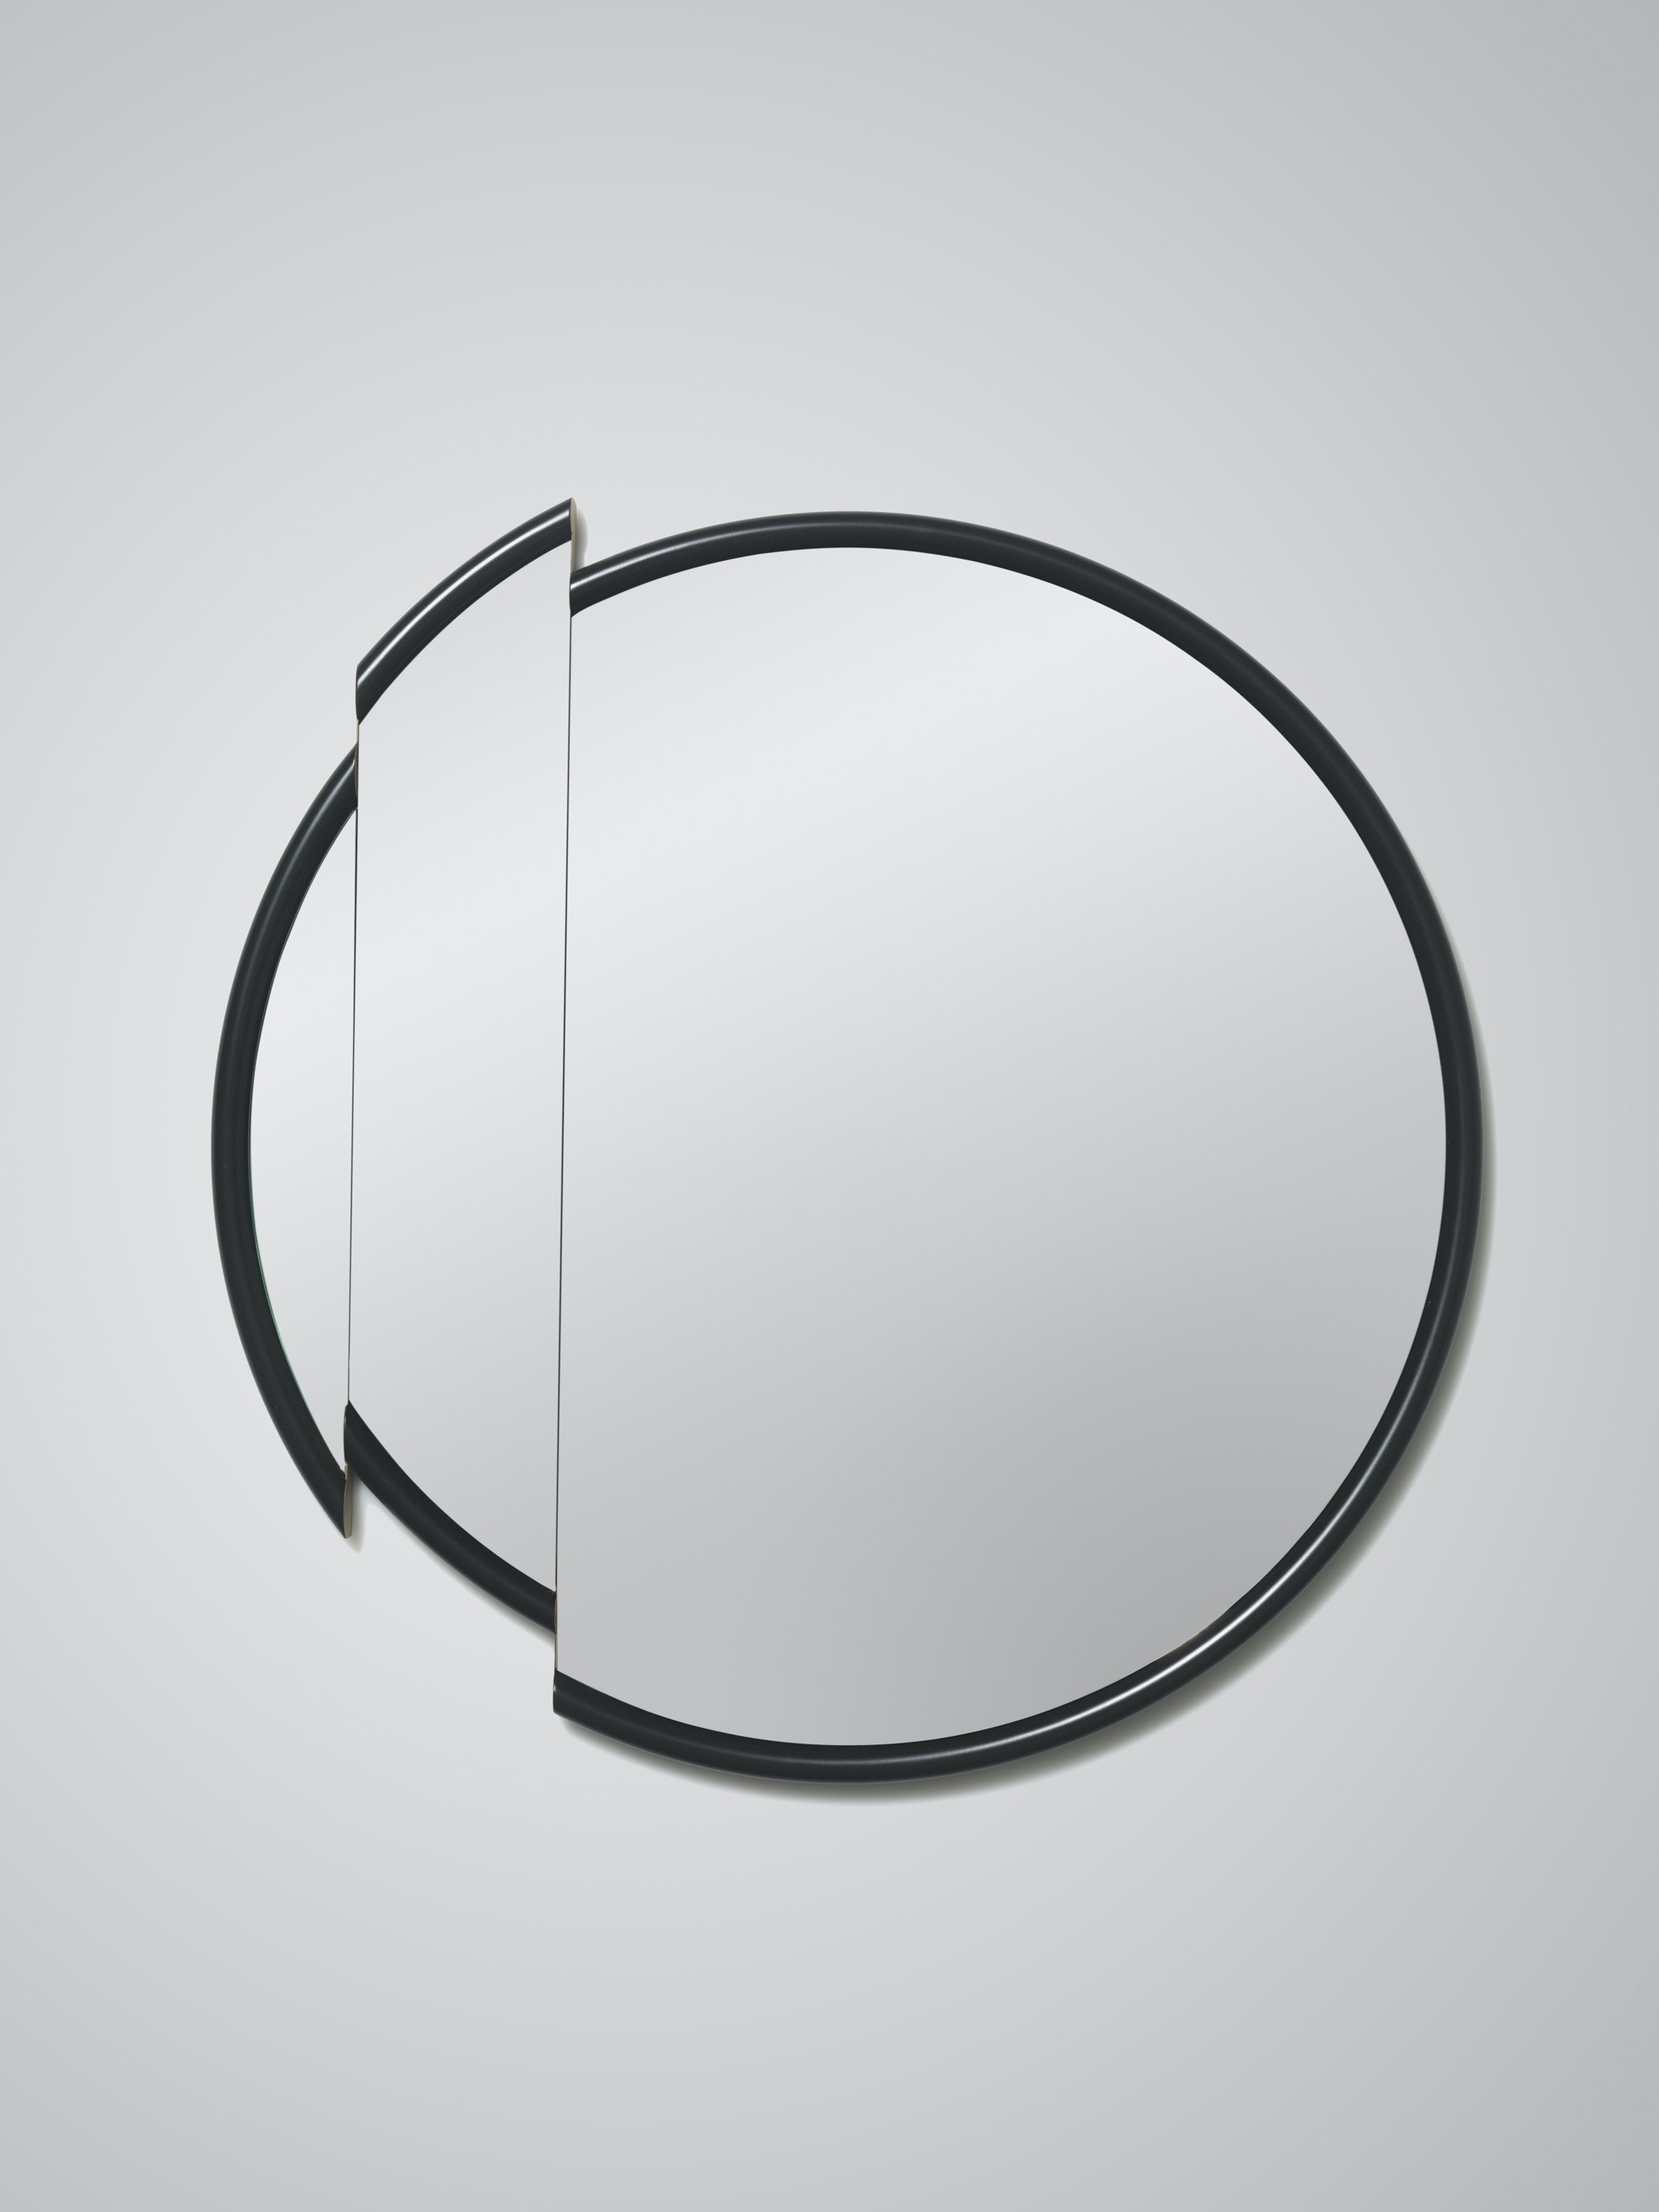 Split Mirror Round White Background 01